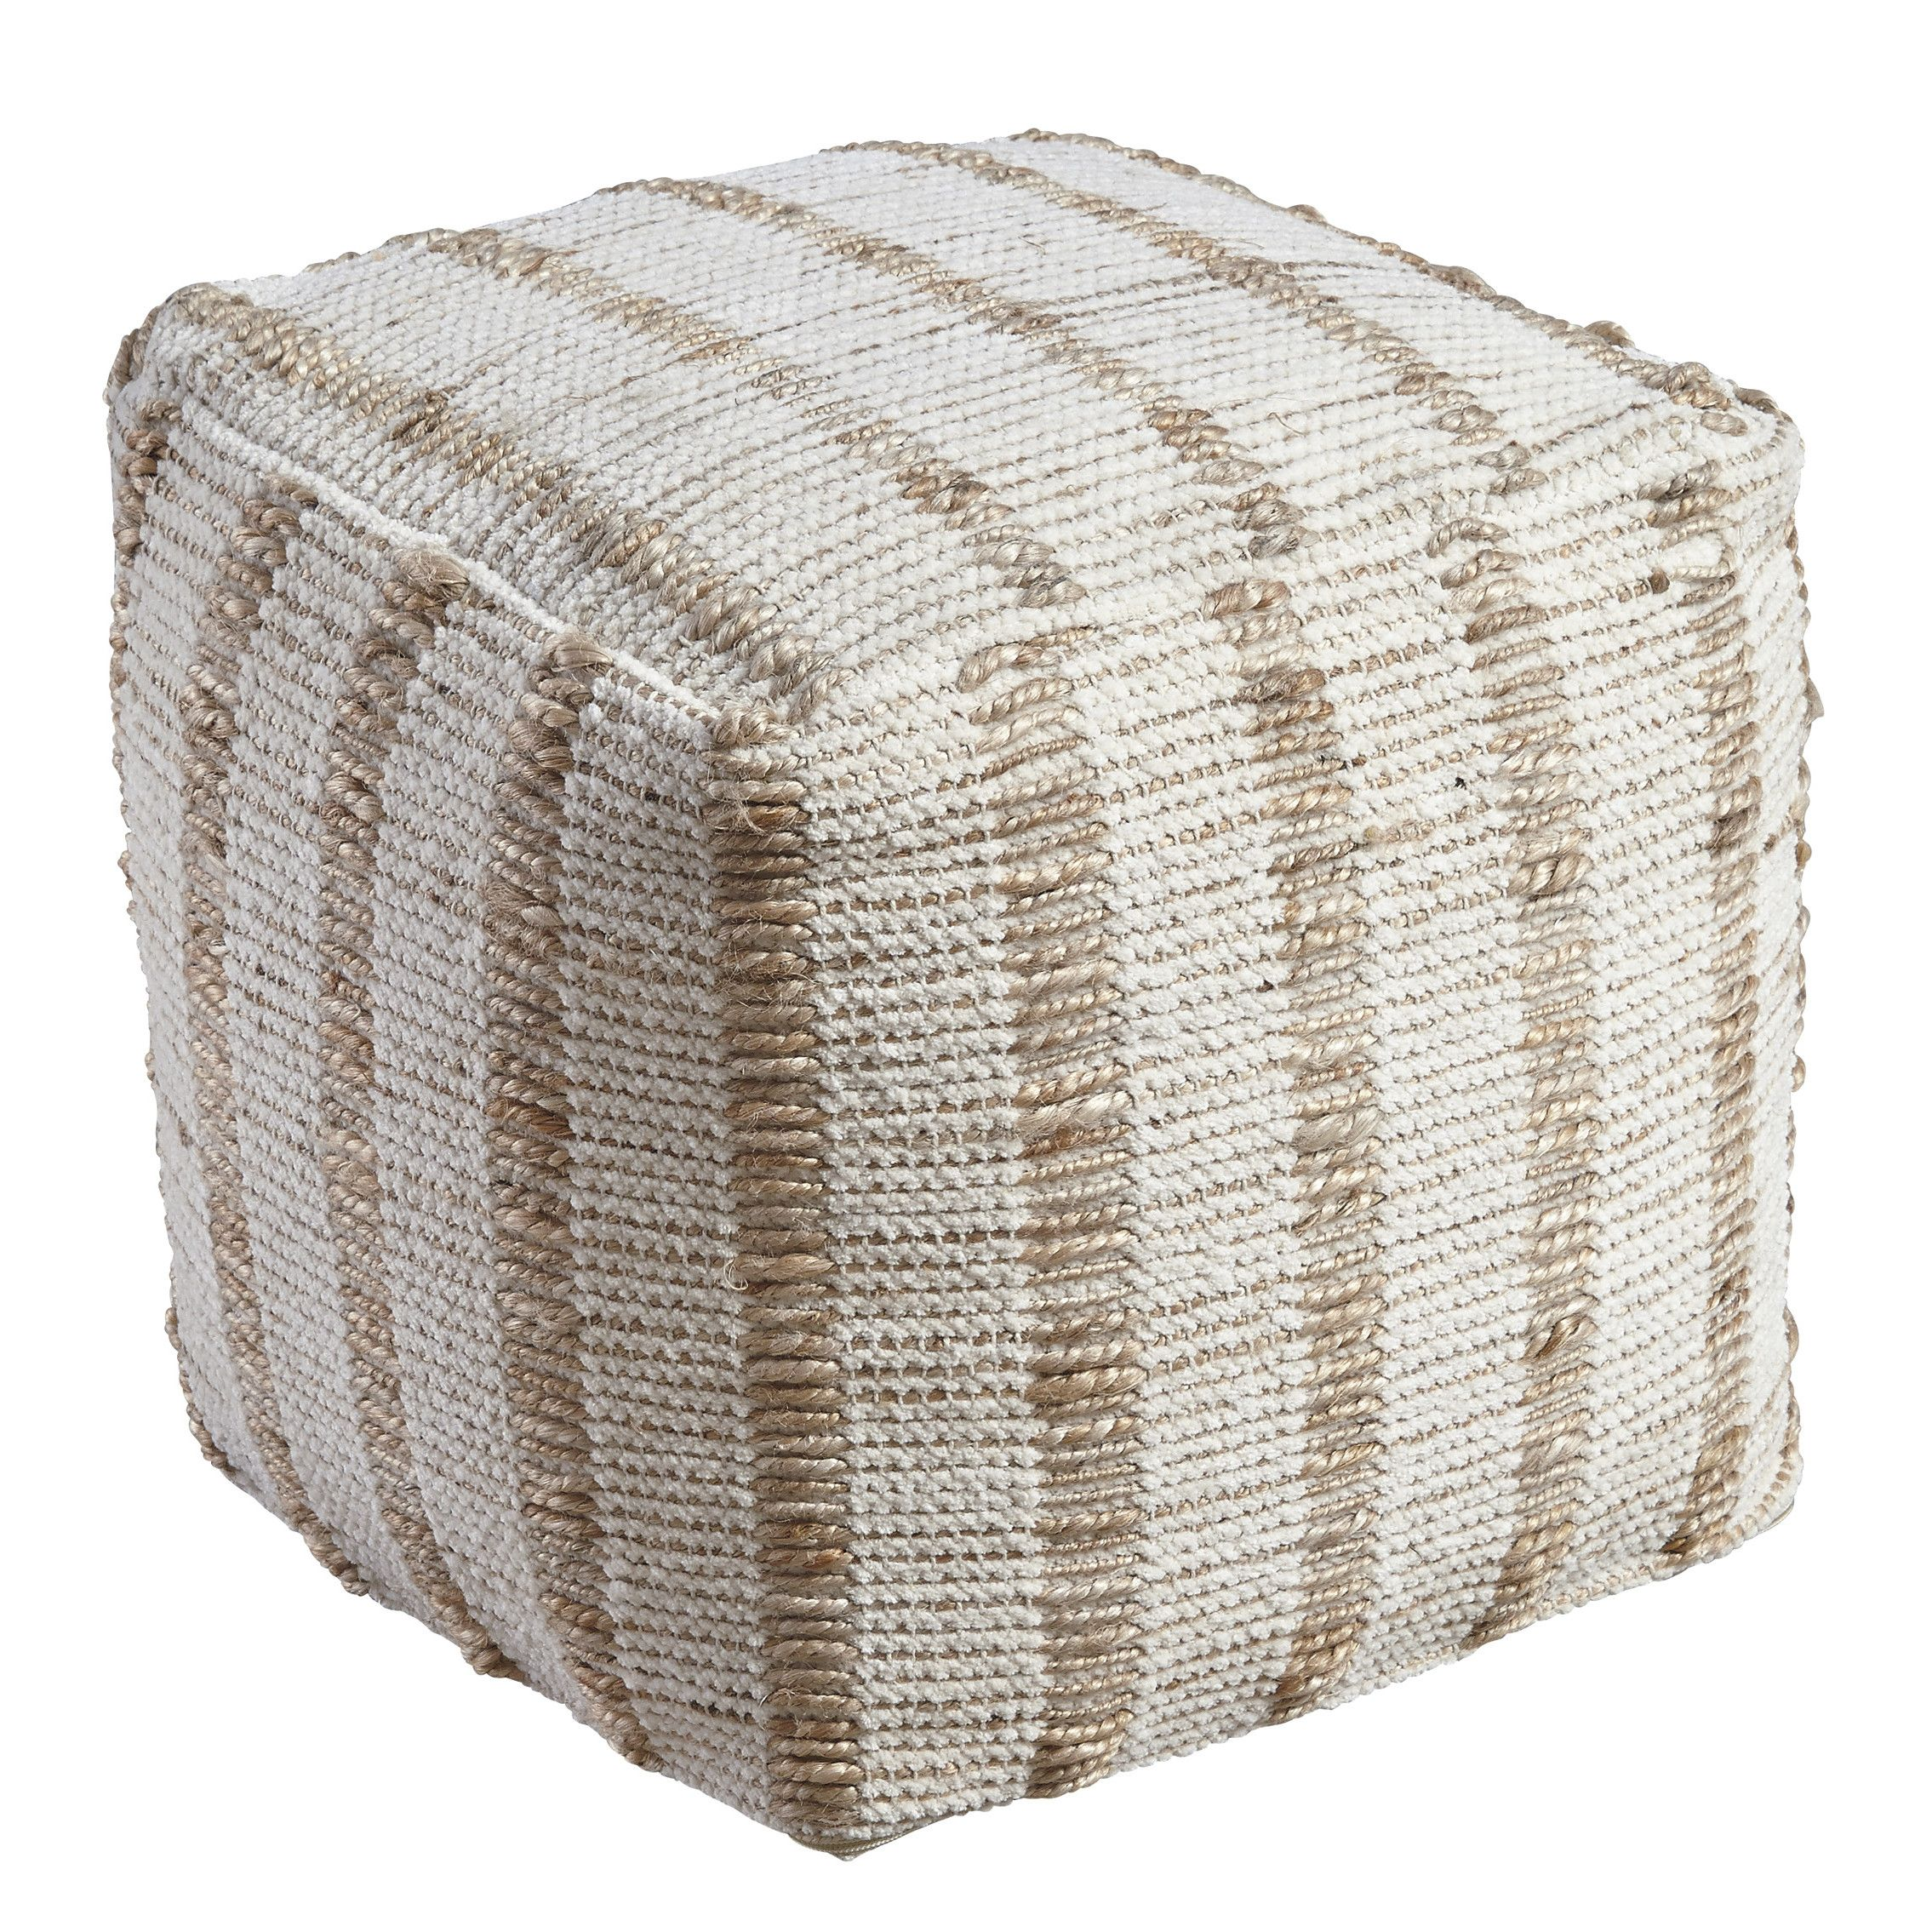 taylor garden product pouf nomad shipping the free curated park ottoman poof round today aptos madison home overstock